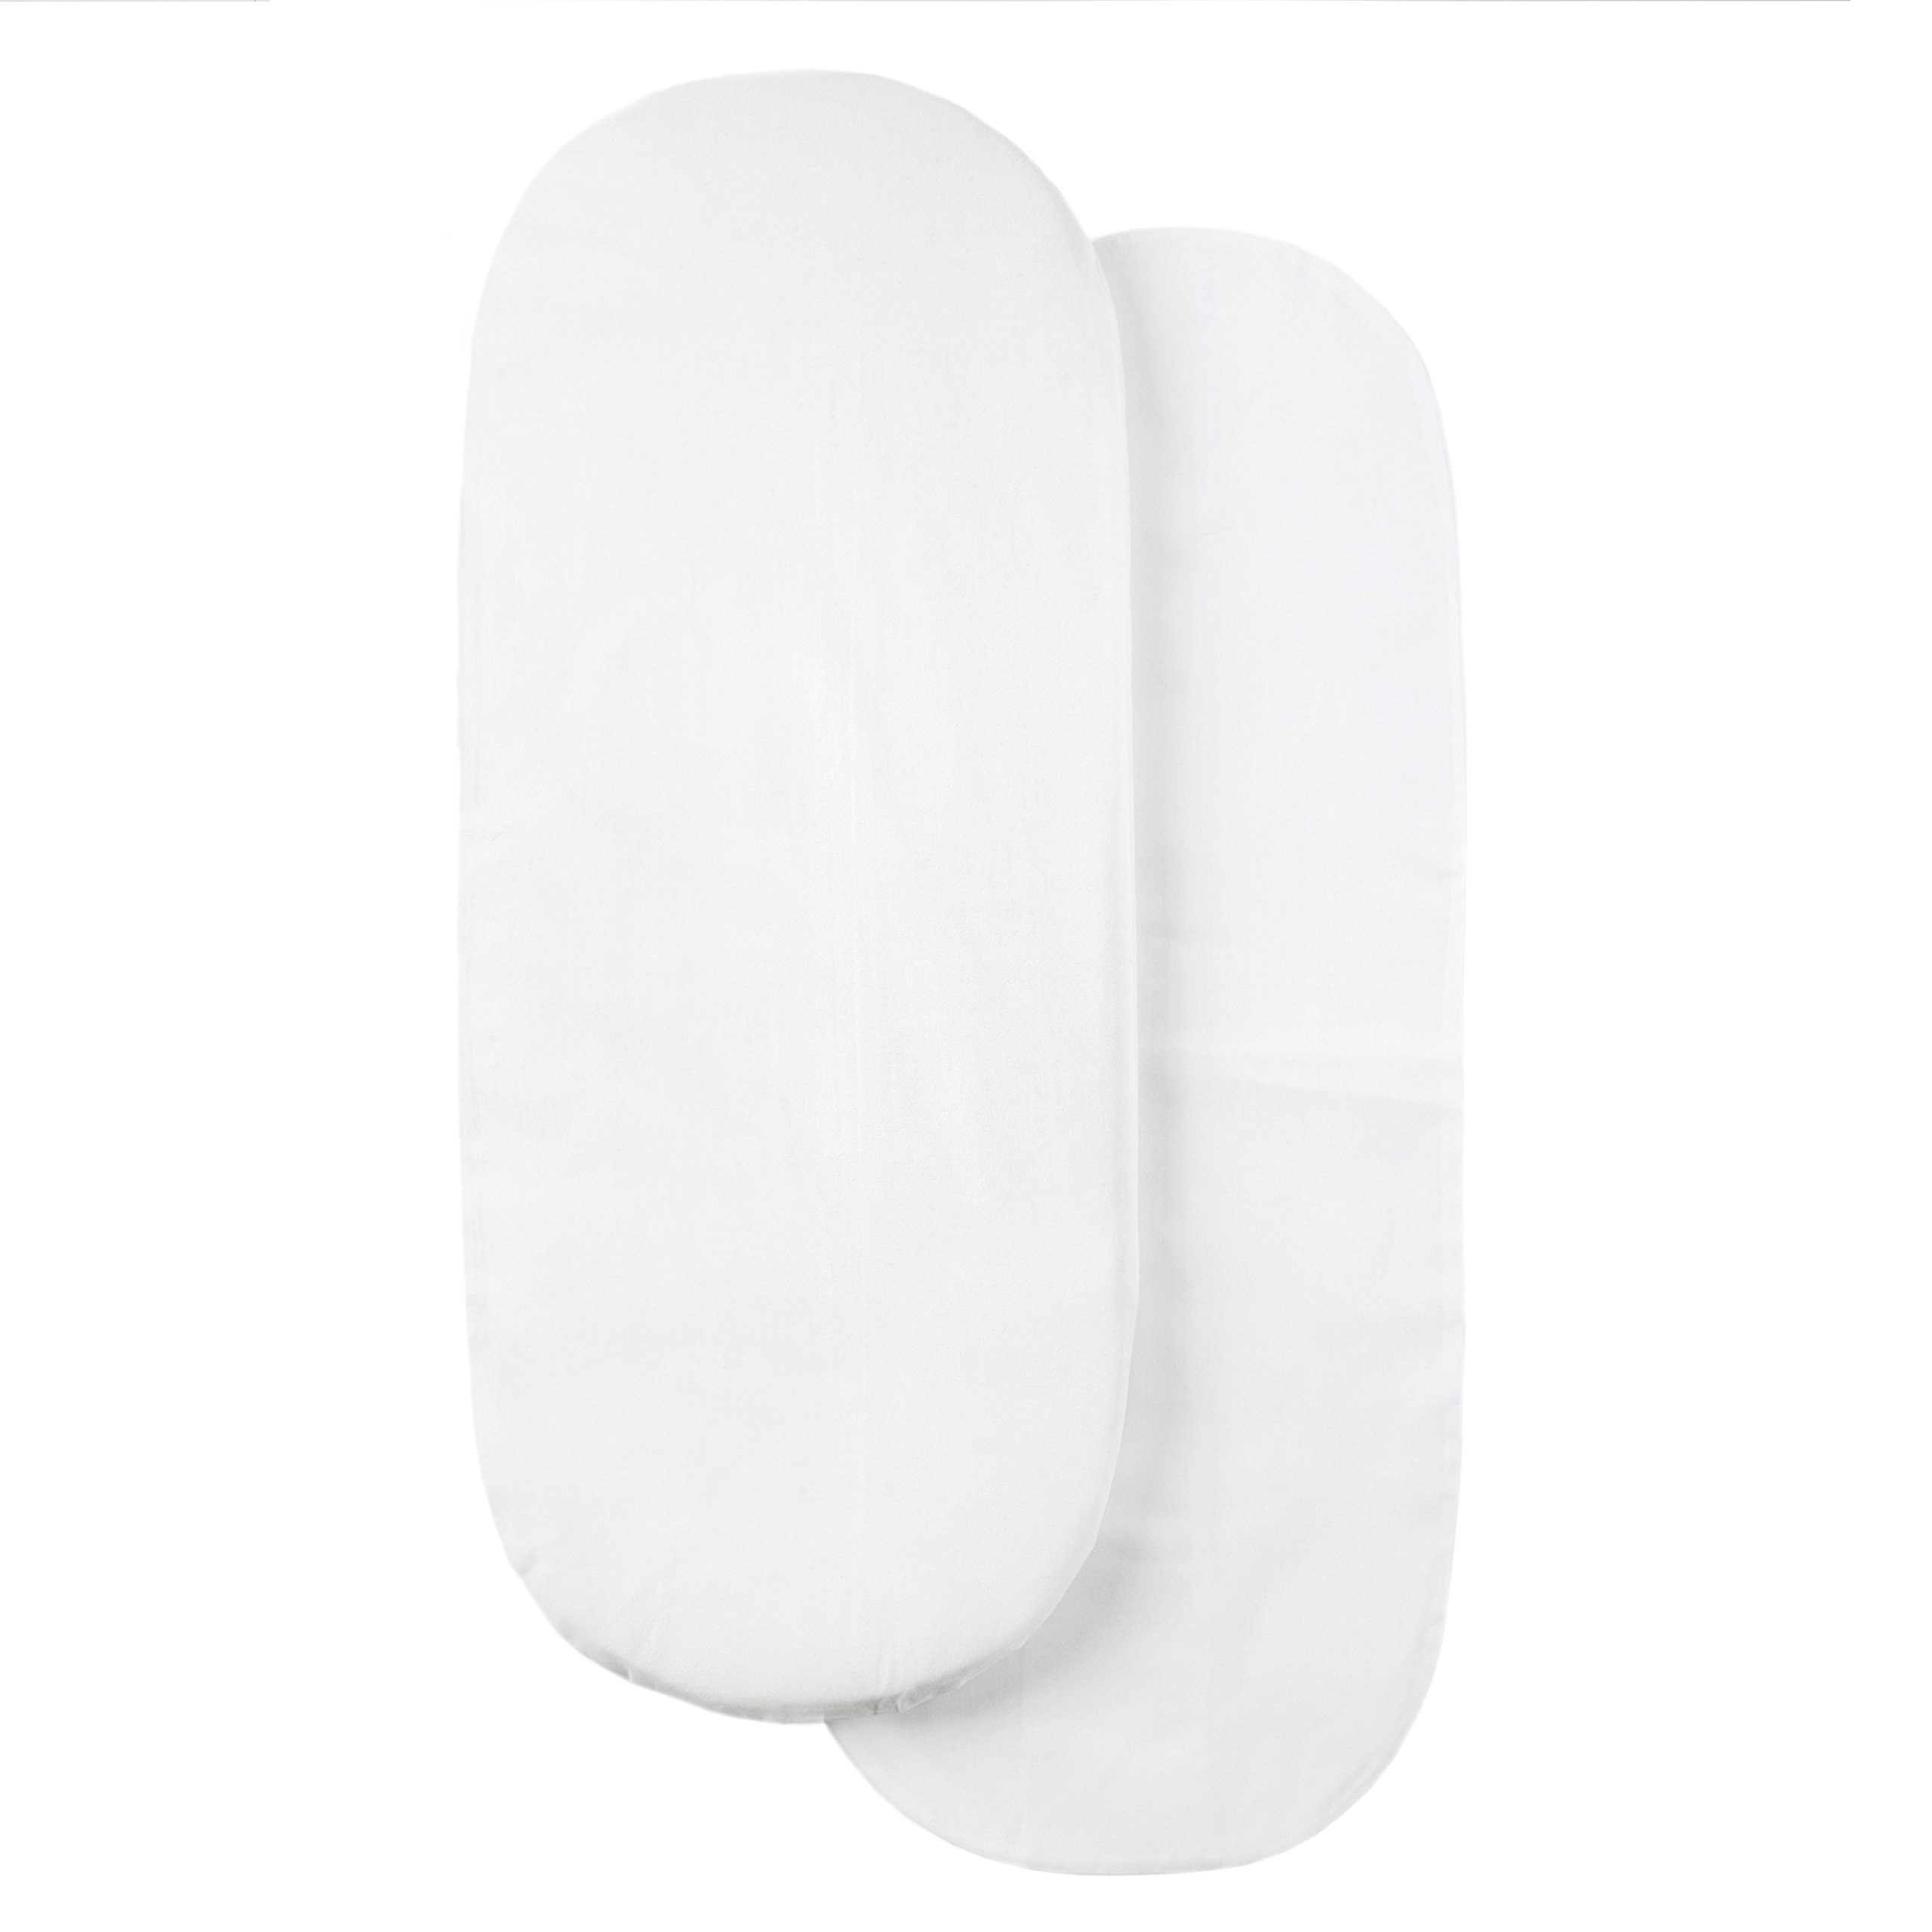 Tadpoles Moses Basket Foam Pad with Removable Cotton Covers, White, (Pack of 2) by Tadpoles